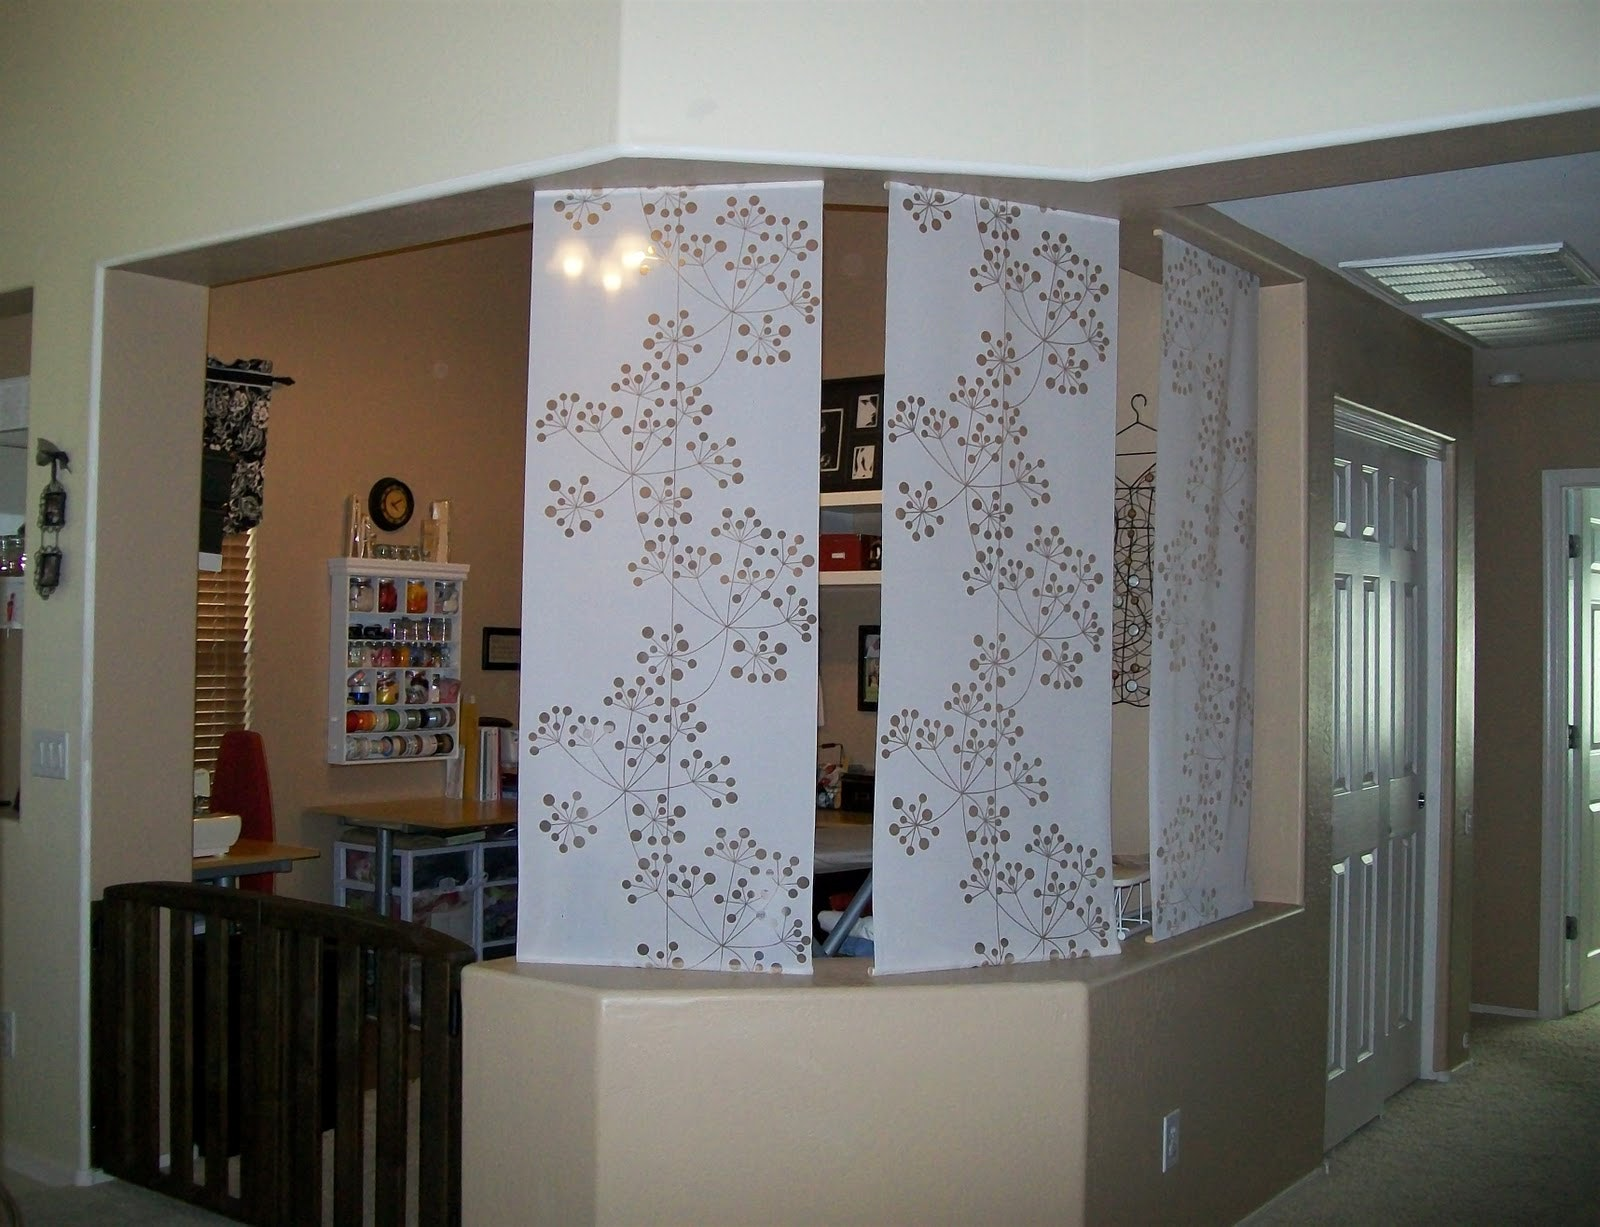 Curtain Rod Room Divider | Curtain Separator | Room Divider Curtains